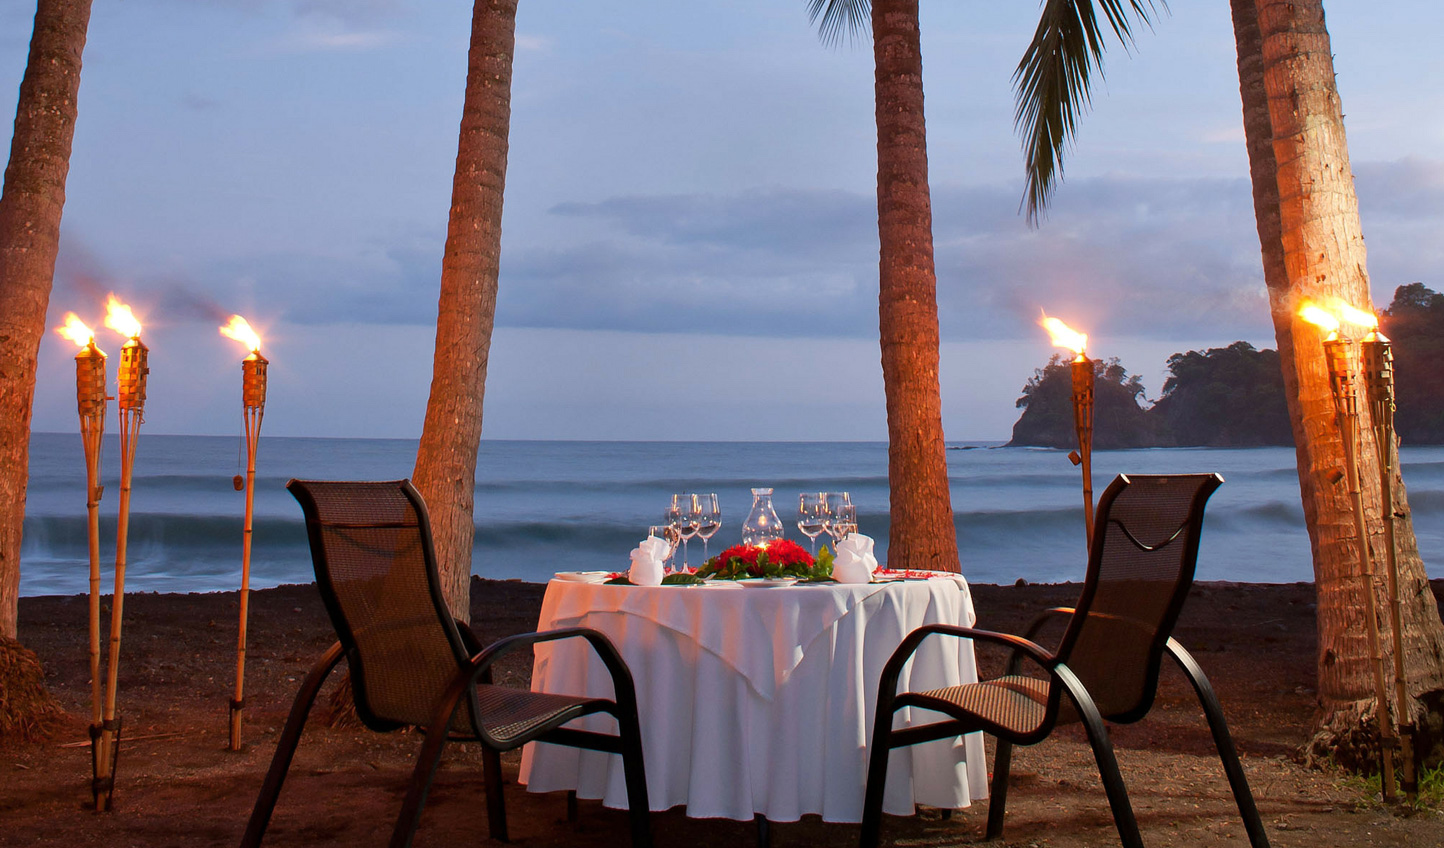 What a romantic setting for dinner